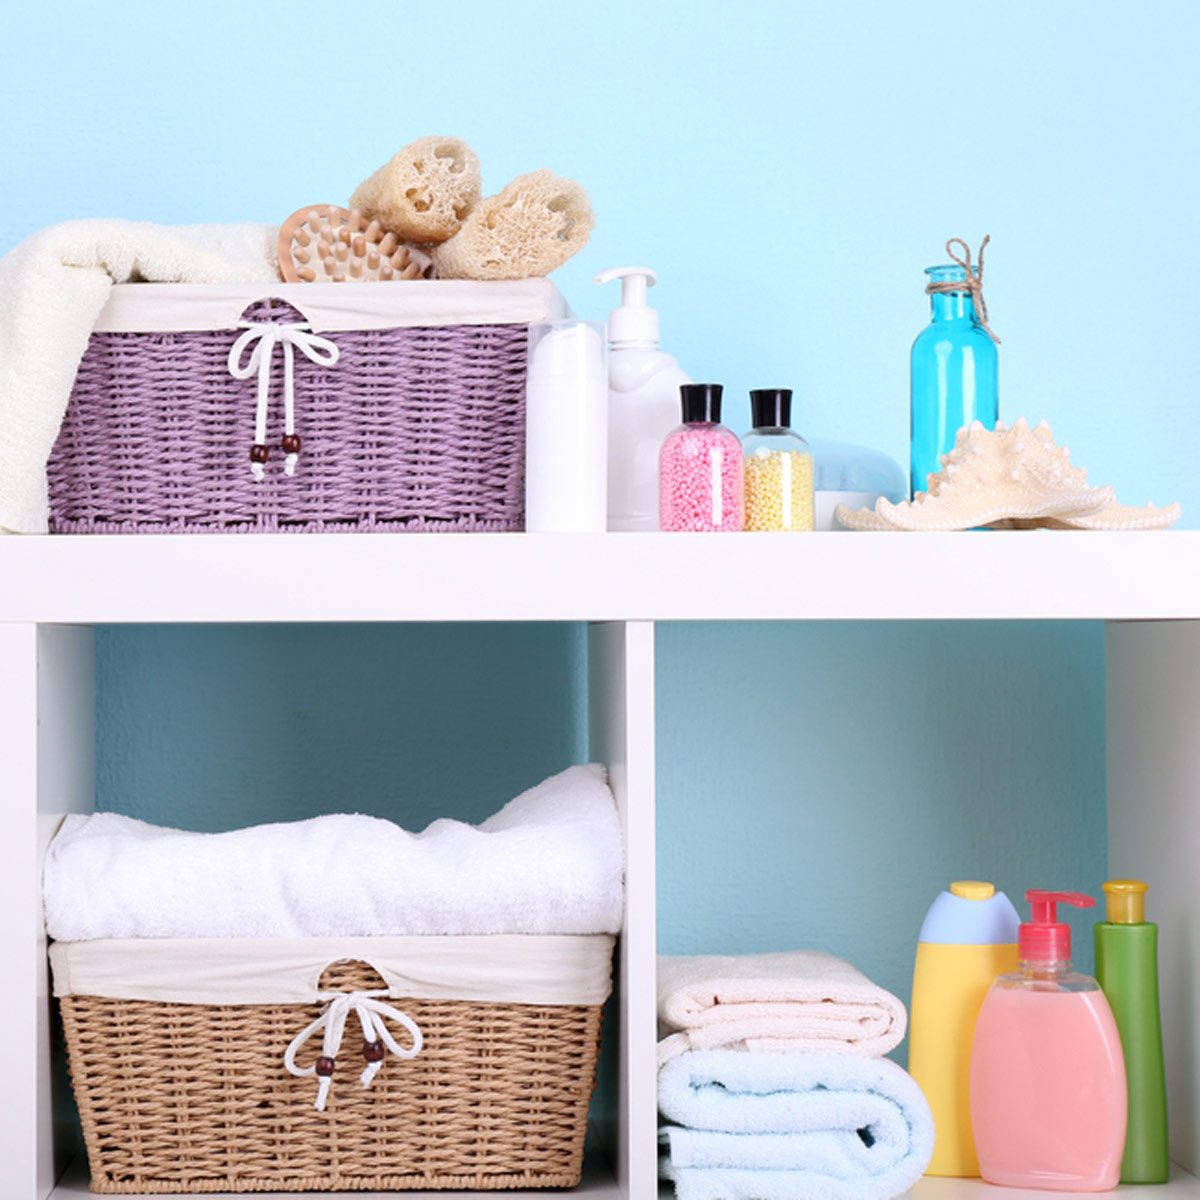 shutterstock_203428204 baby changing station organization